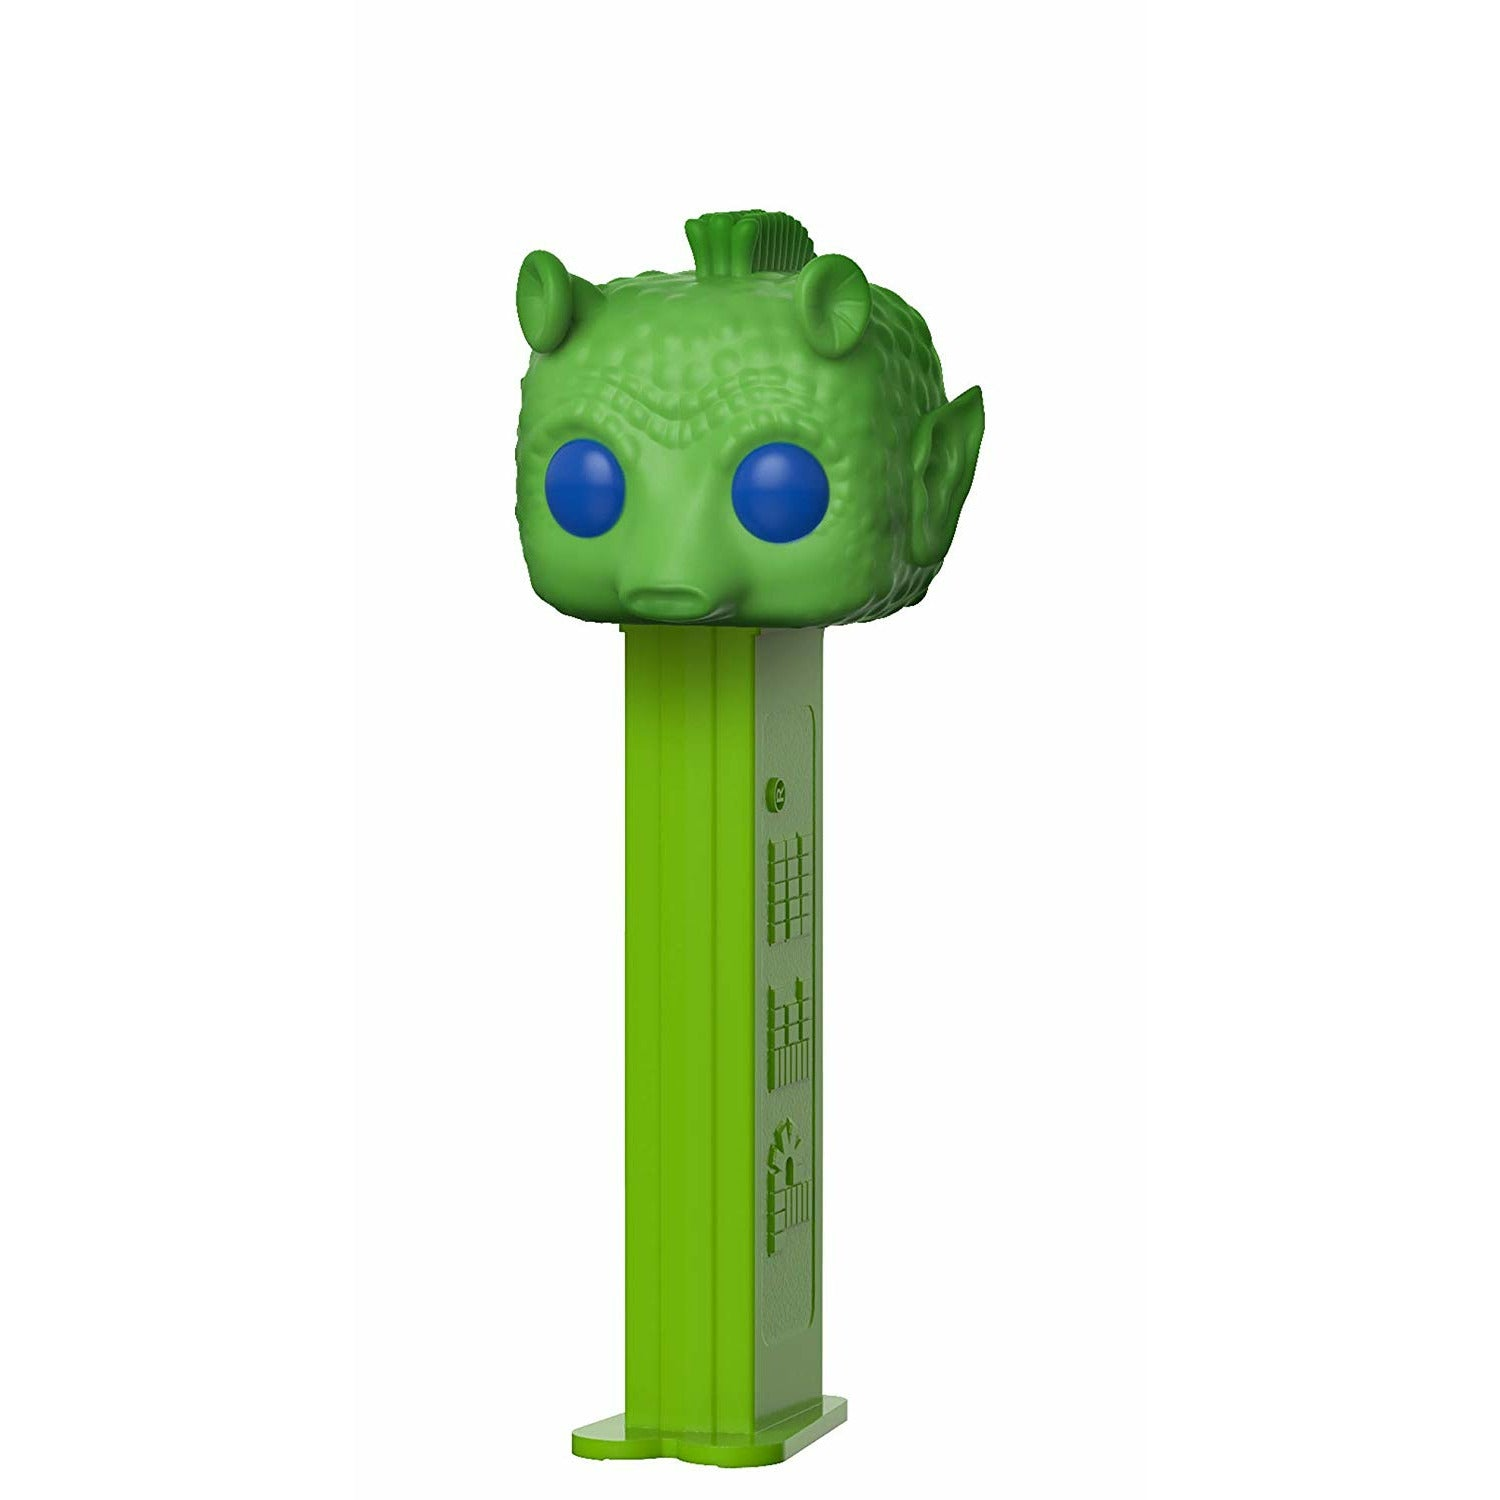 Star Wars Greedo Pop! PEZ Candy Dispenser